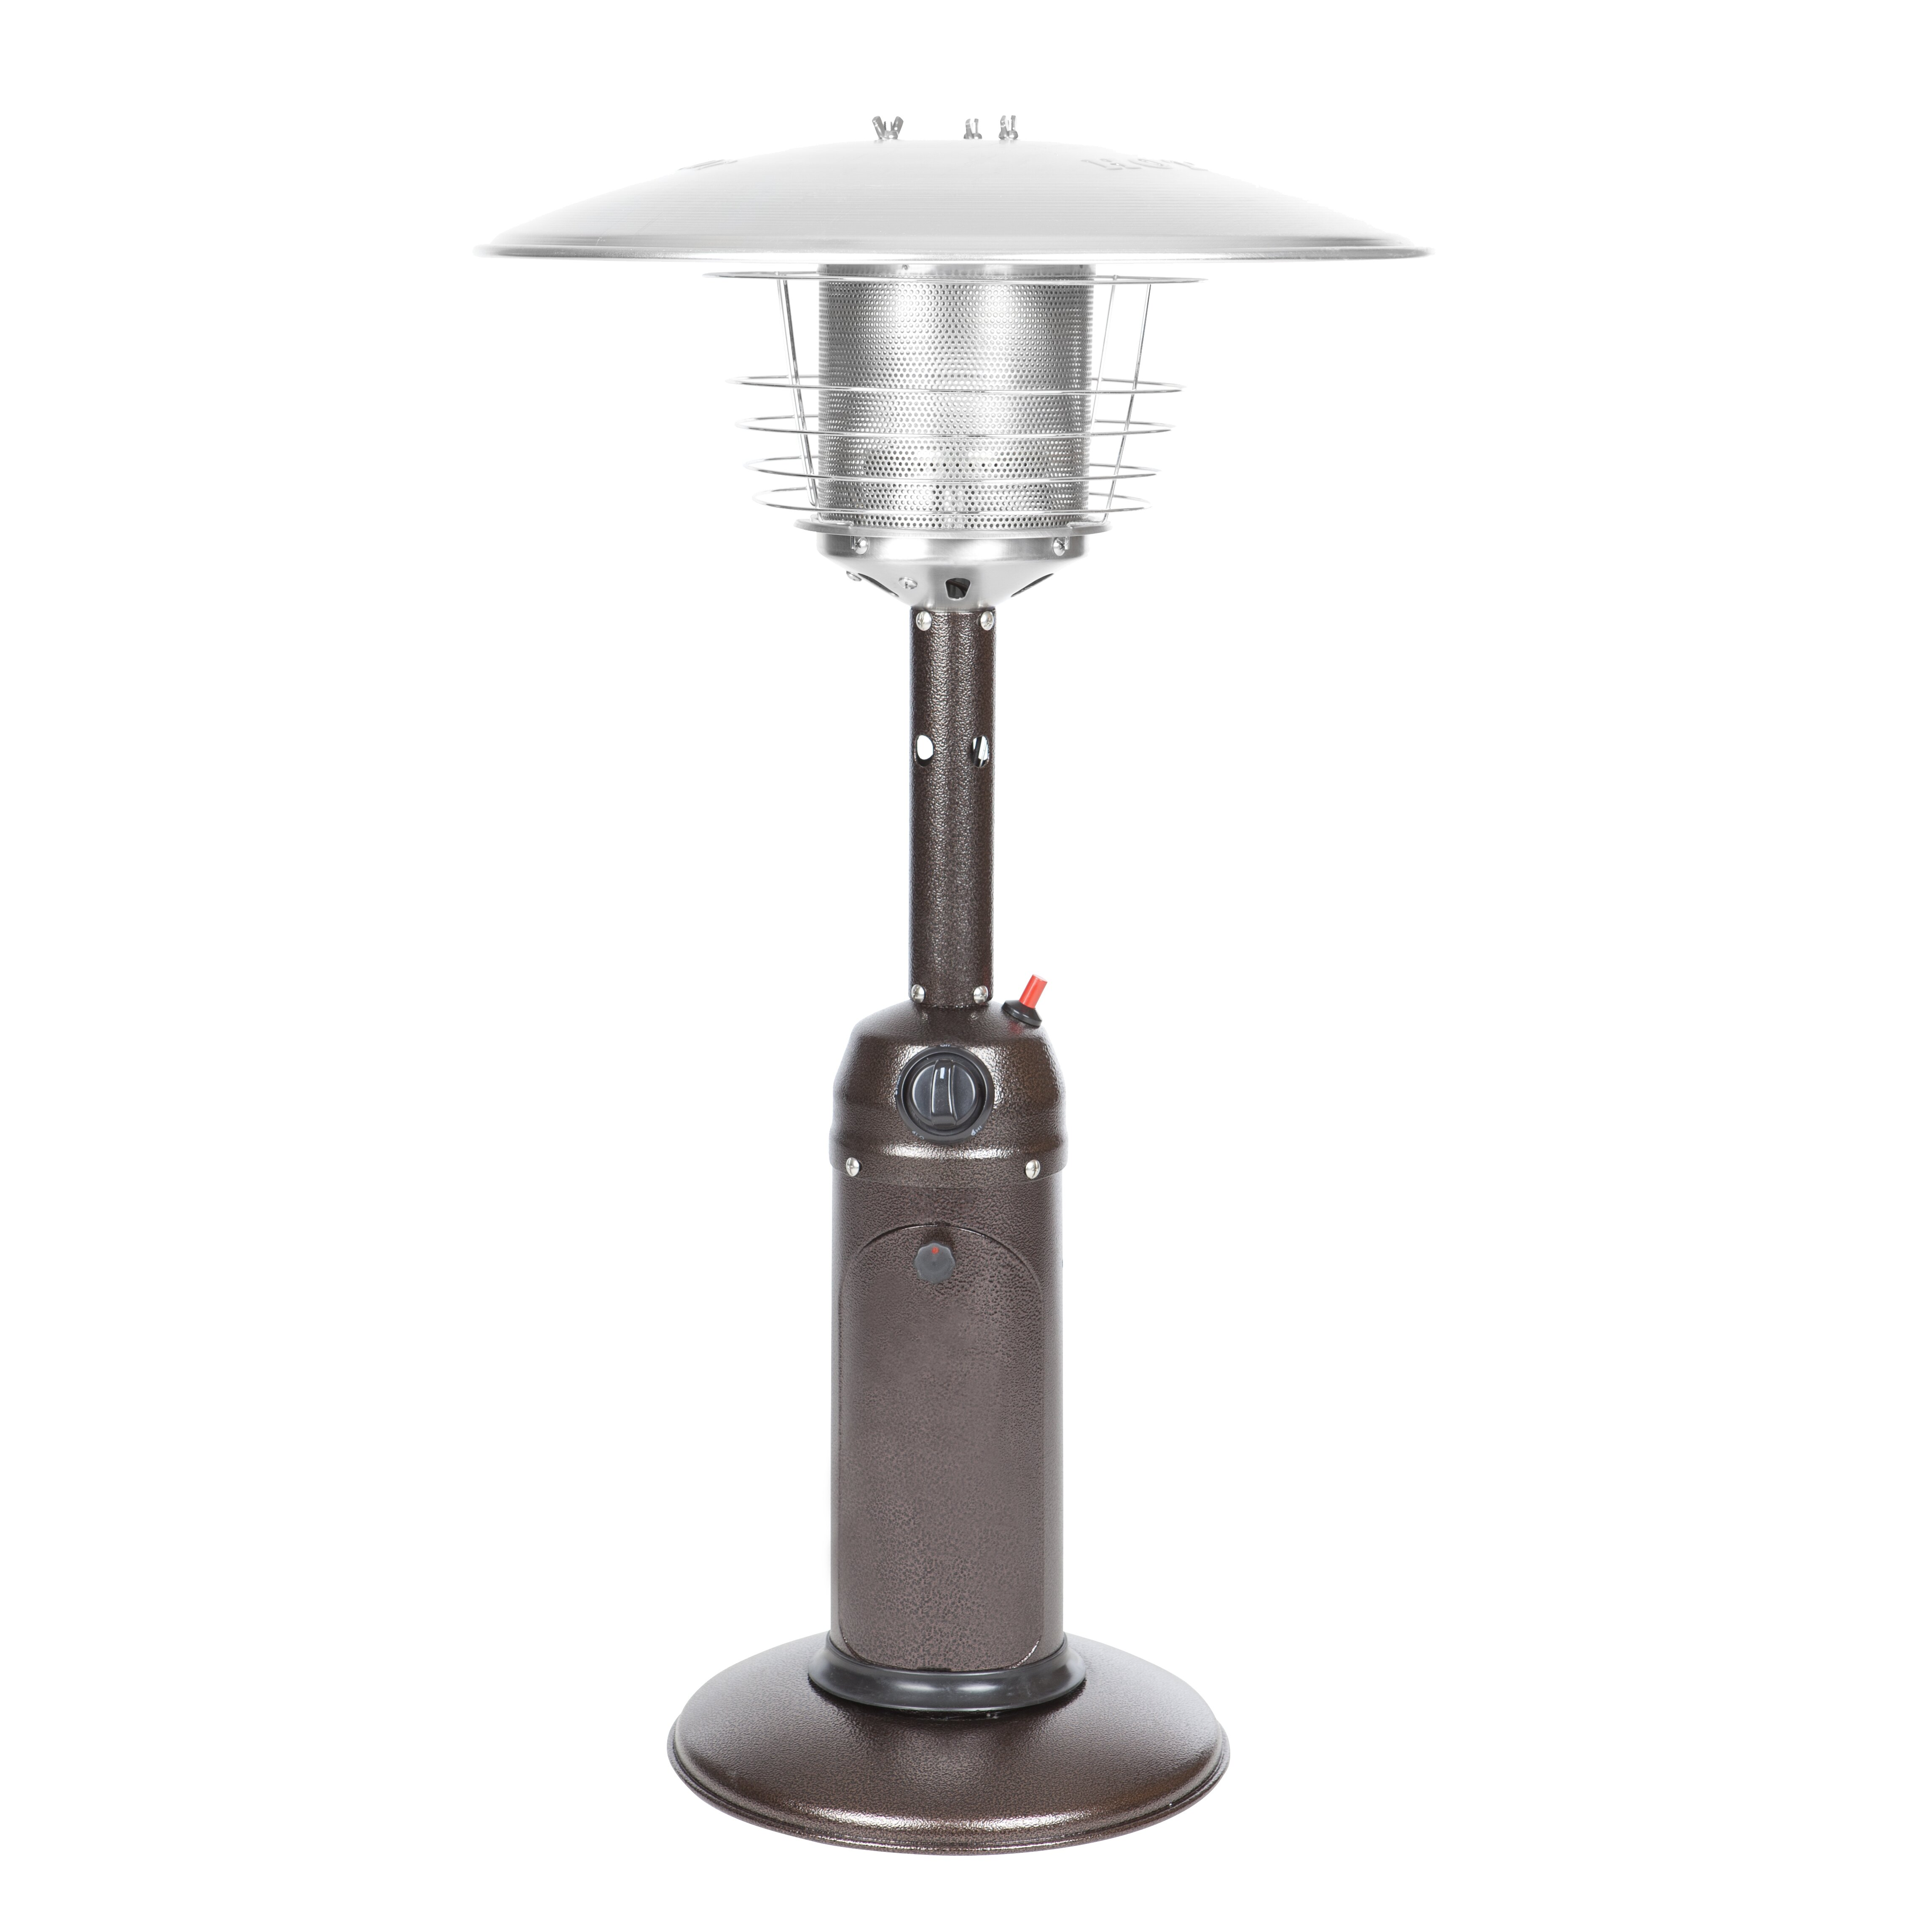 Fire Sense 10000 BTU Propane Tabletop Patio Heater Reviews – Fire Sense Patio Heater